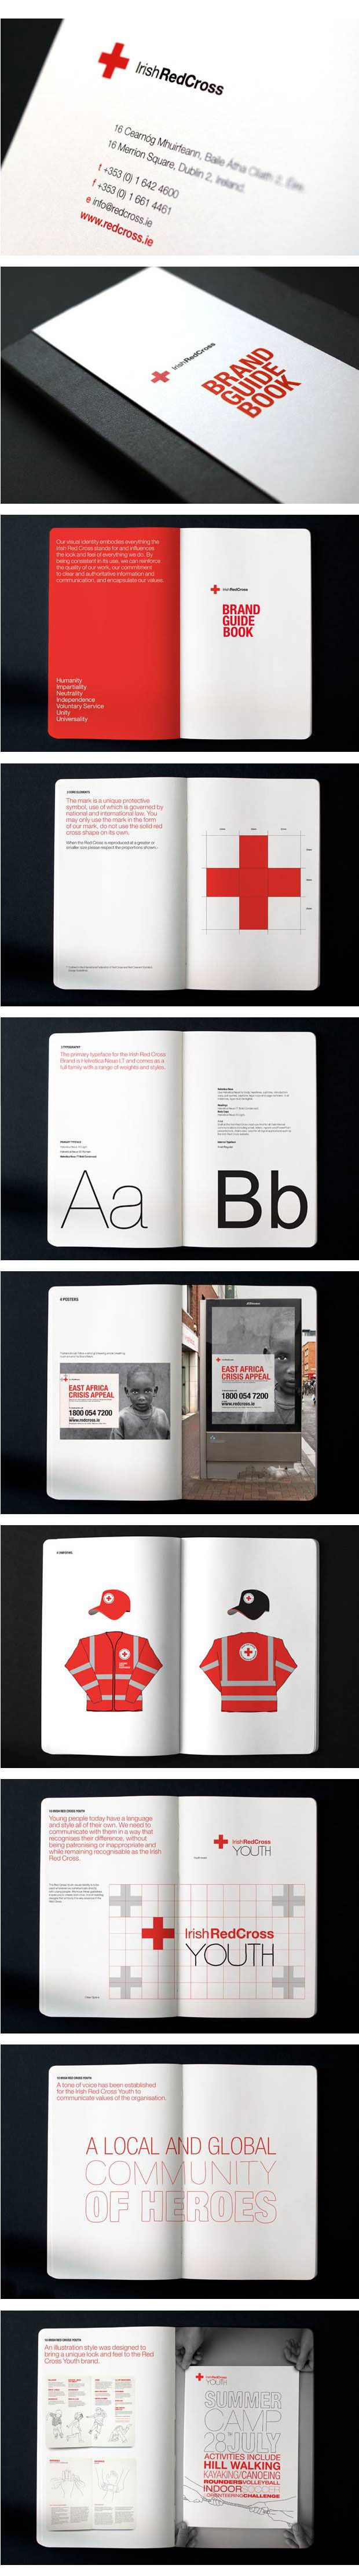 Brand guidelines | Pinterest for Business